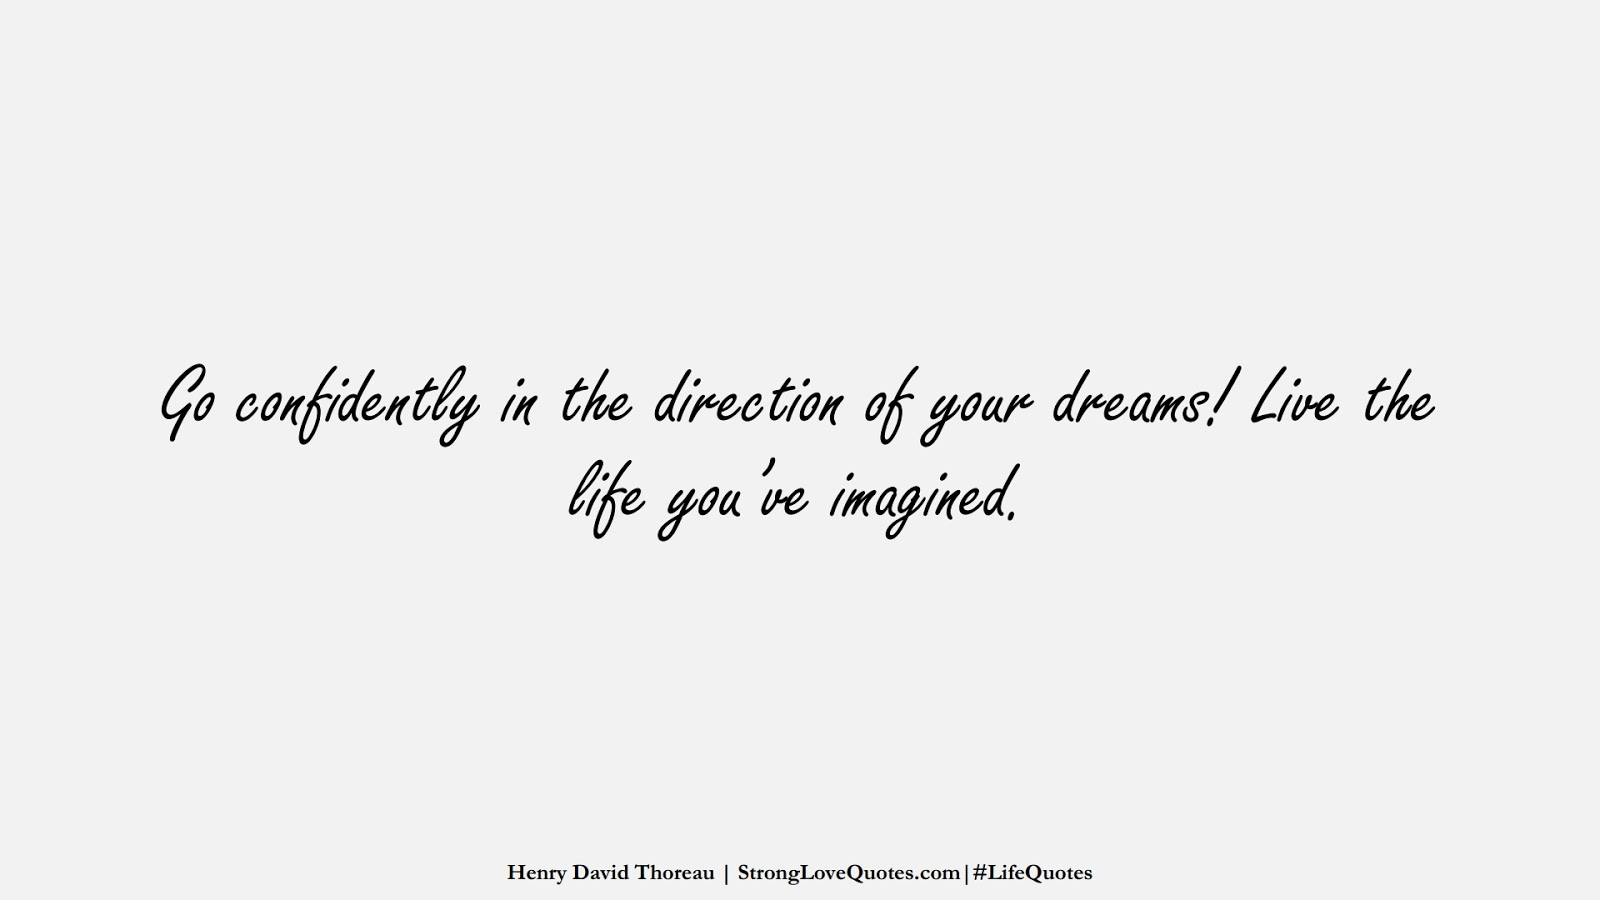 Go confidently in the direction of your dreams! Live the life you've imagined. (Henry David Thoreau);  #LifeQuotes